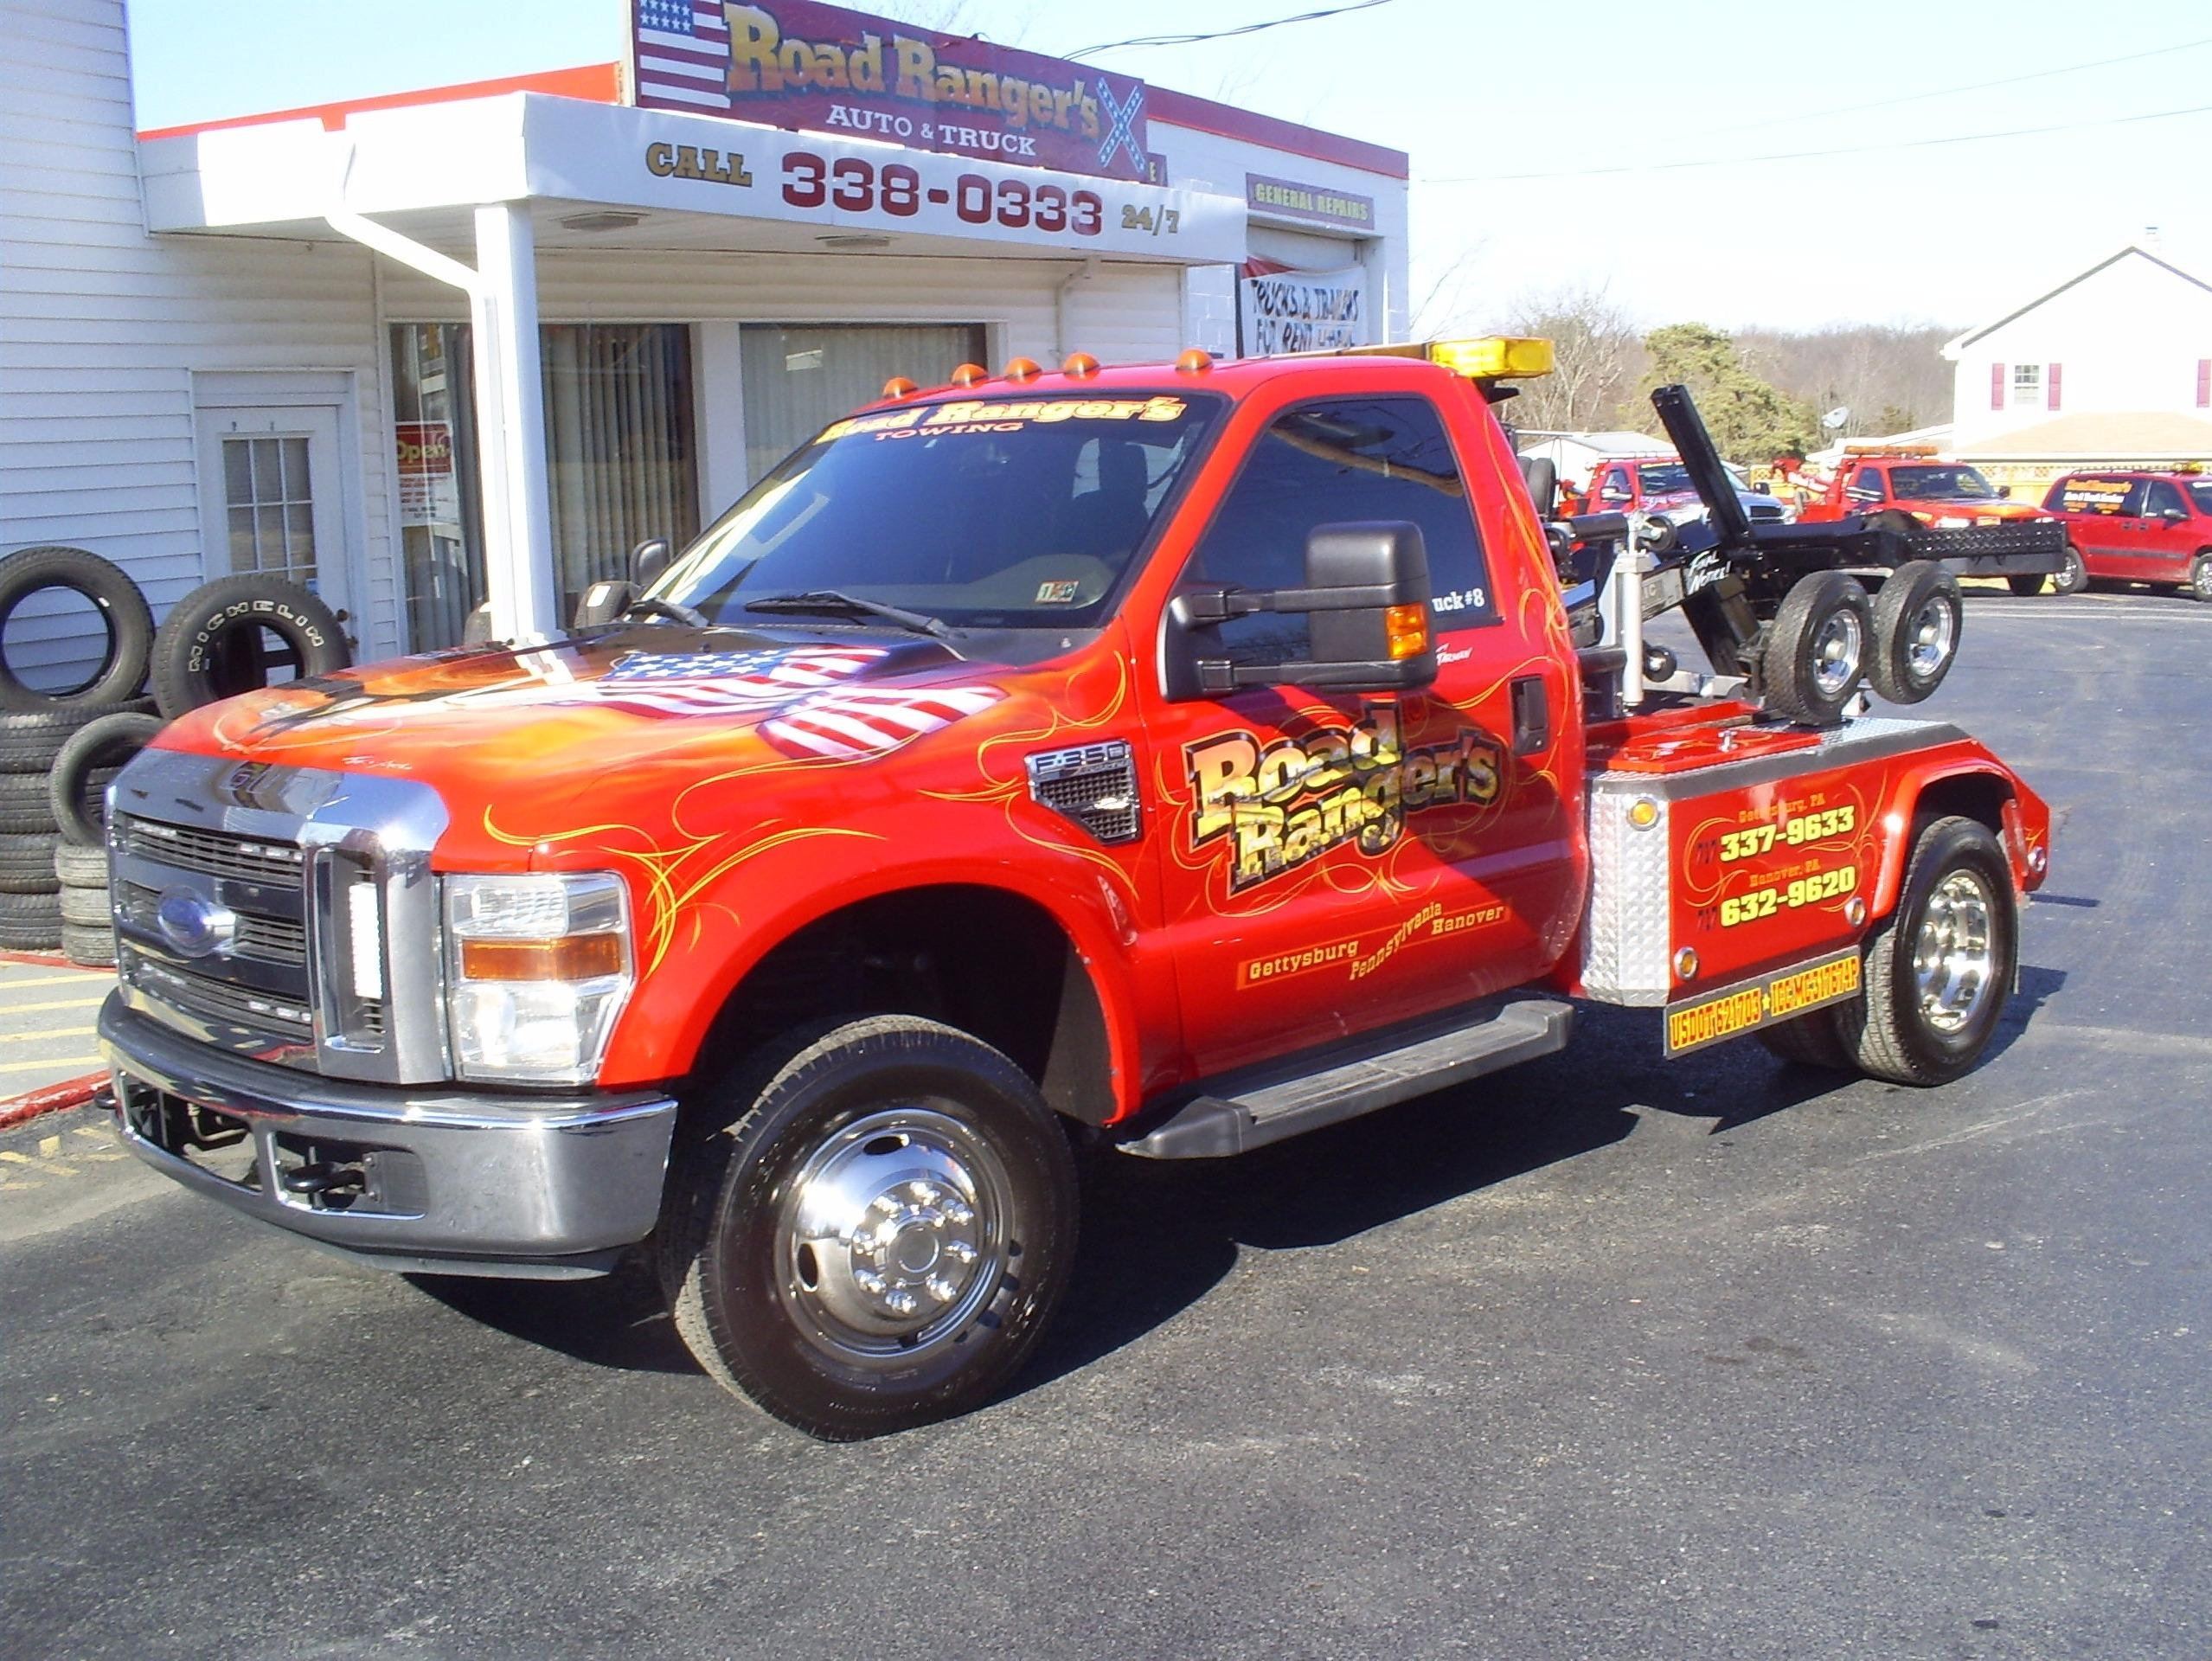 Motorcycle Stores Near Me >> Road Ranger's Auto & Truck Sales & Service Coupons Gettysburg PA near me | 8coupons